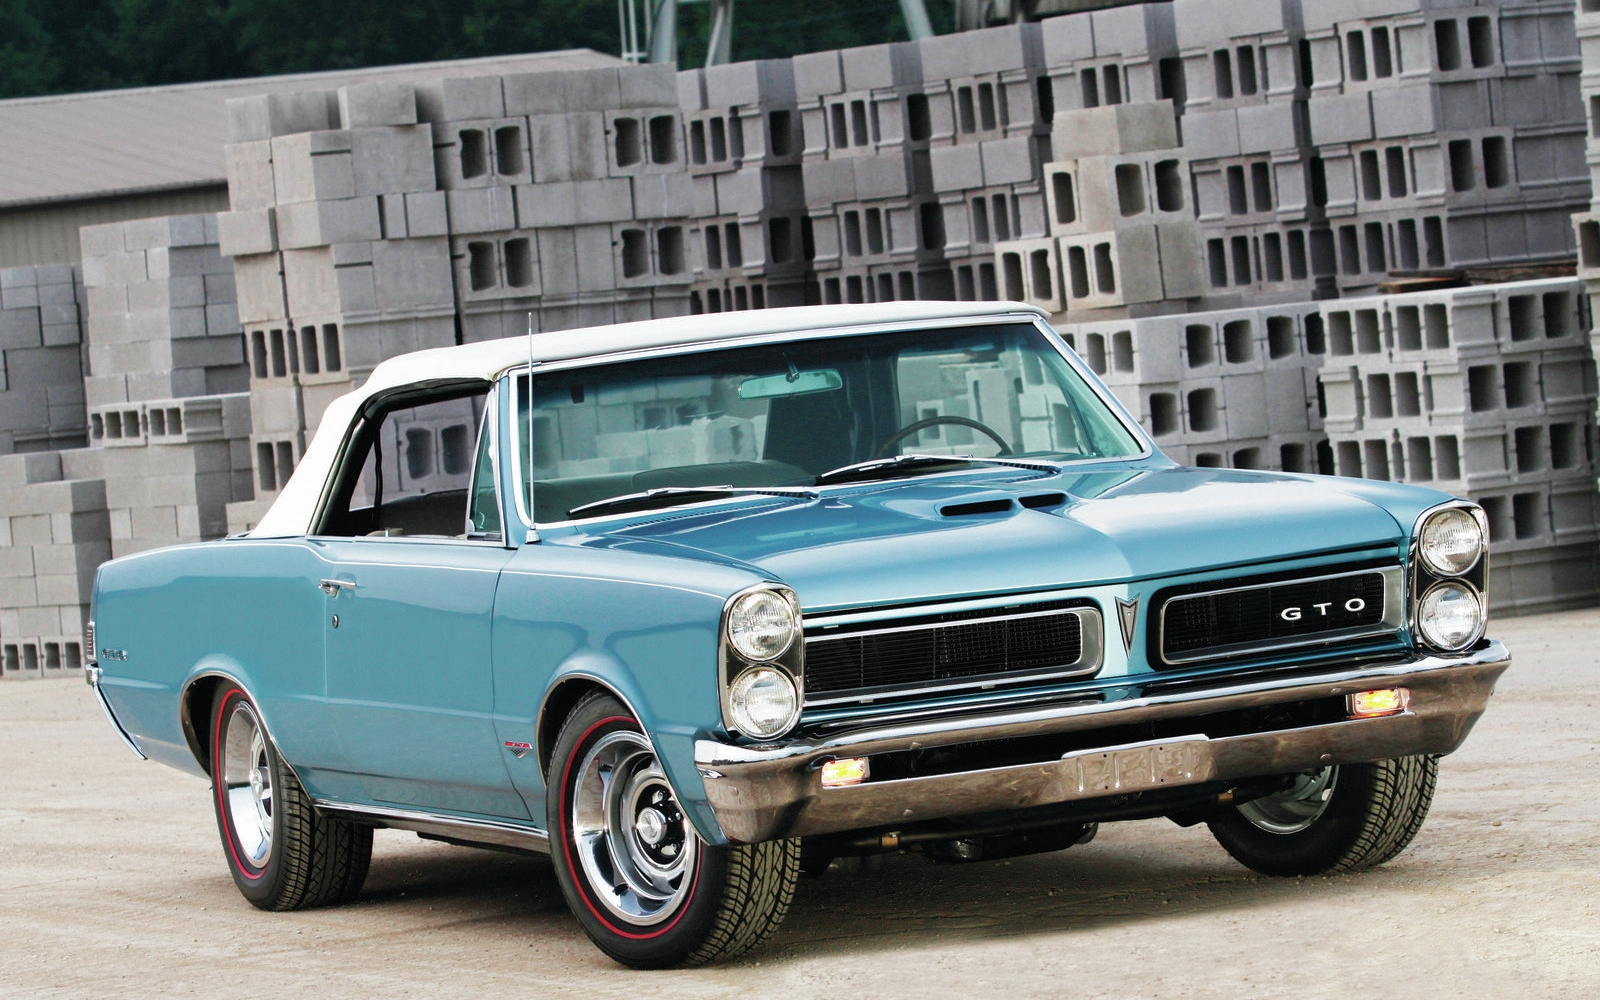 1965 Gto Wallpaper And Background Image 1600x1000 Id